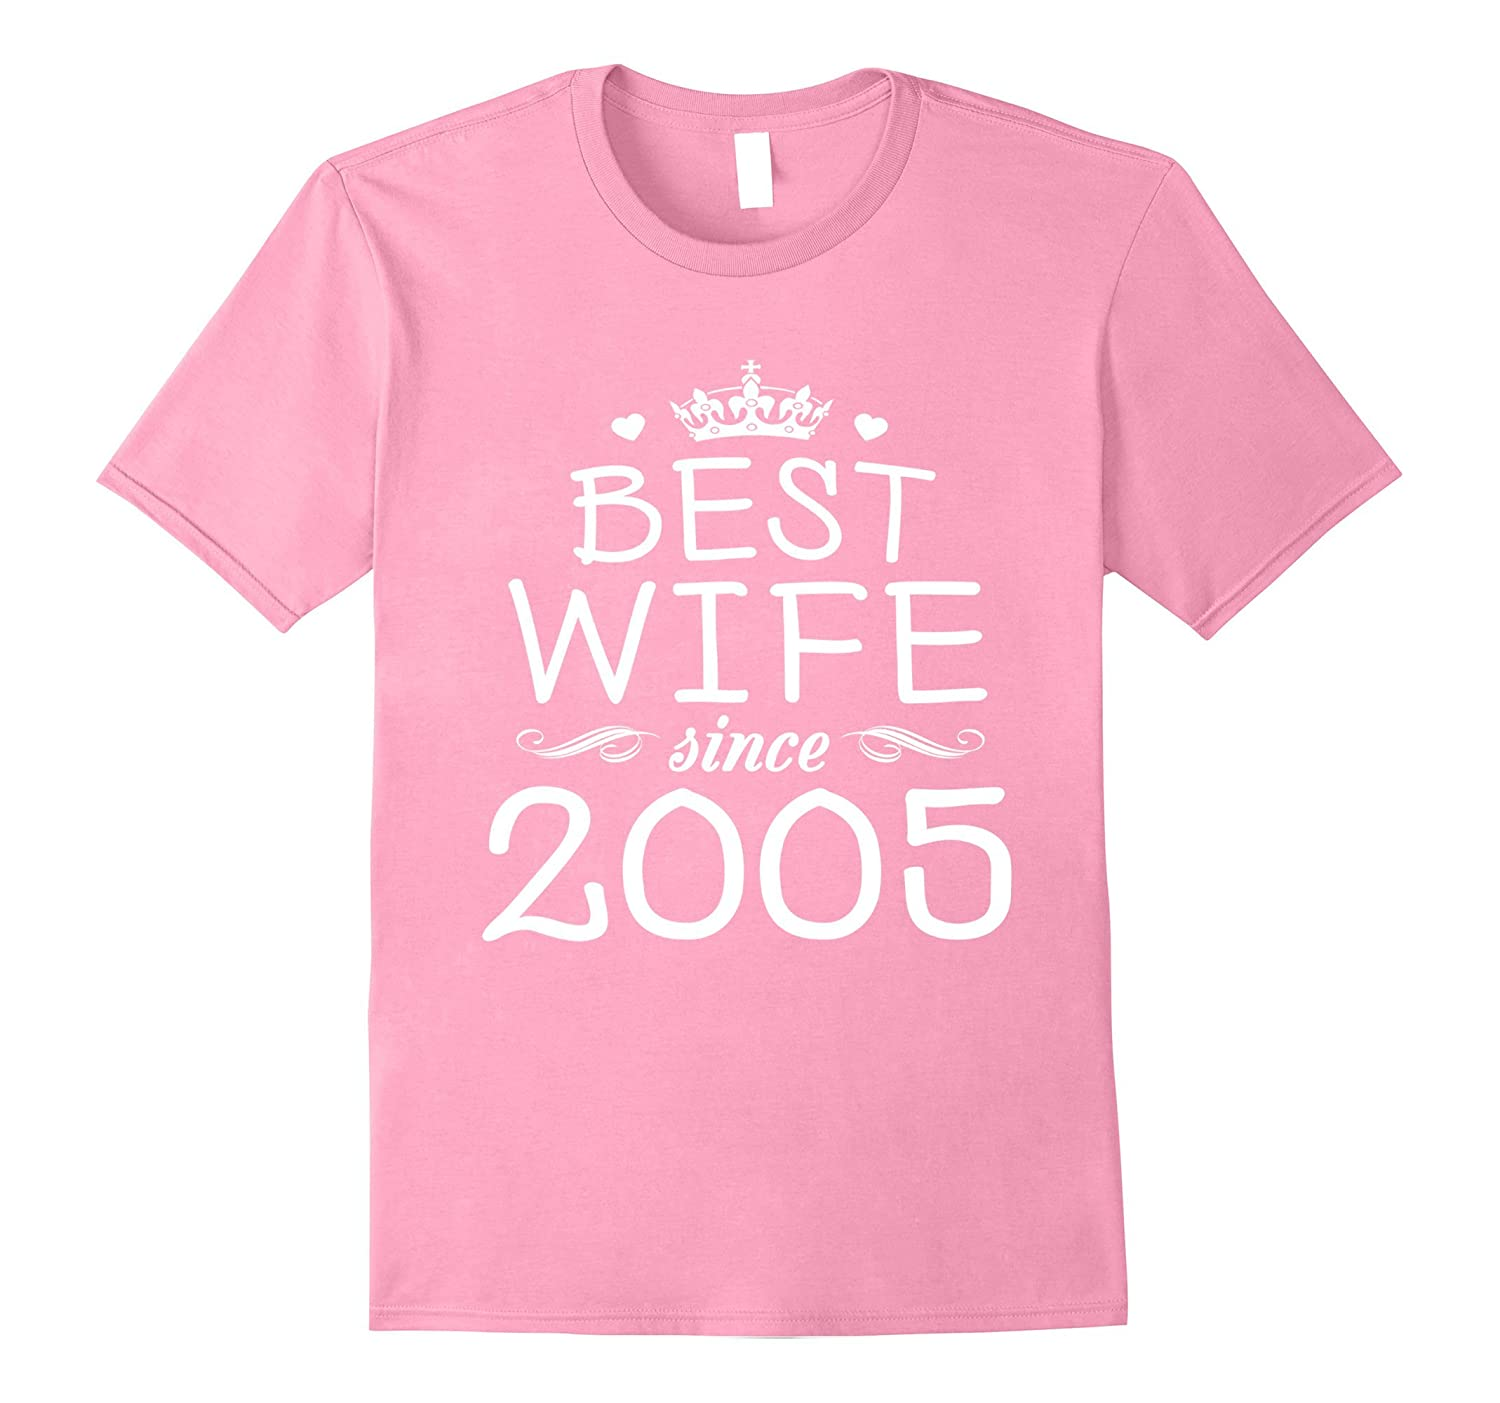 12 Wedding Anniversary Gift Ideas: 12th Wedding Anniversary Gift Ideas For Her-Wife Since